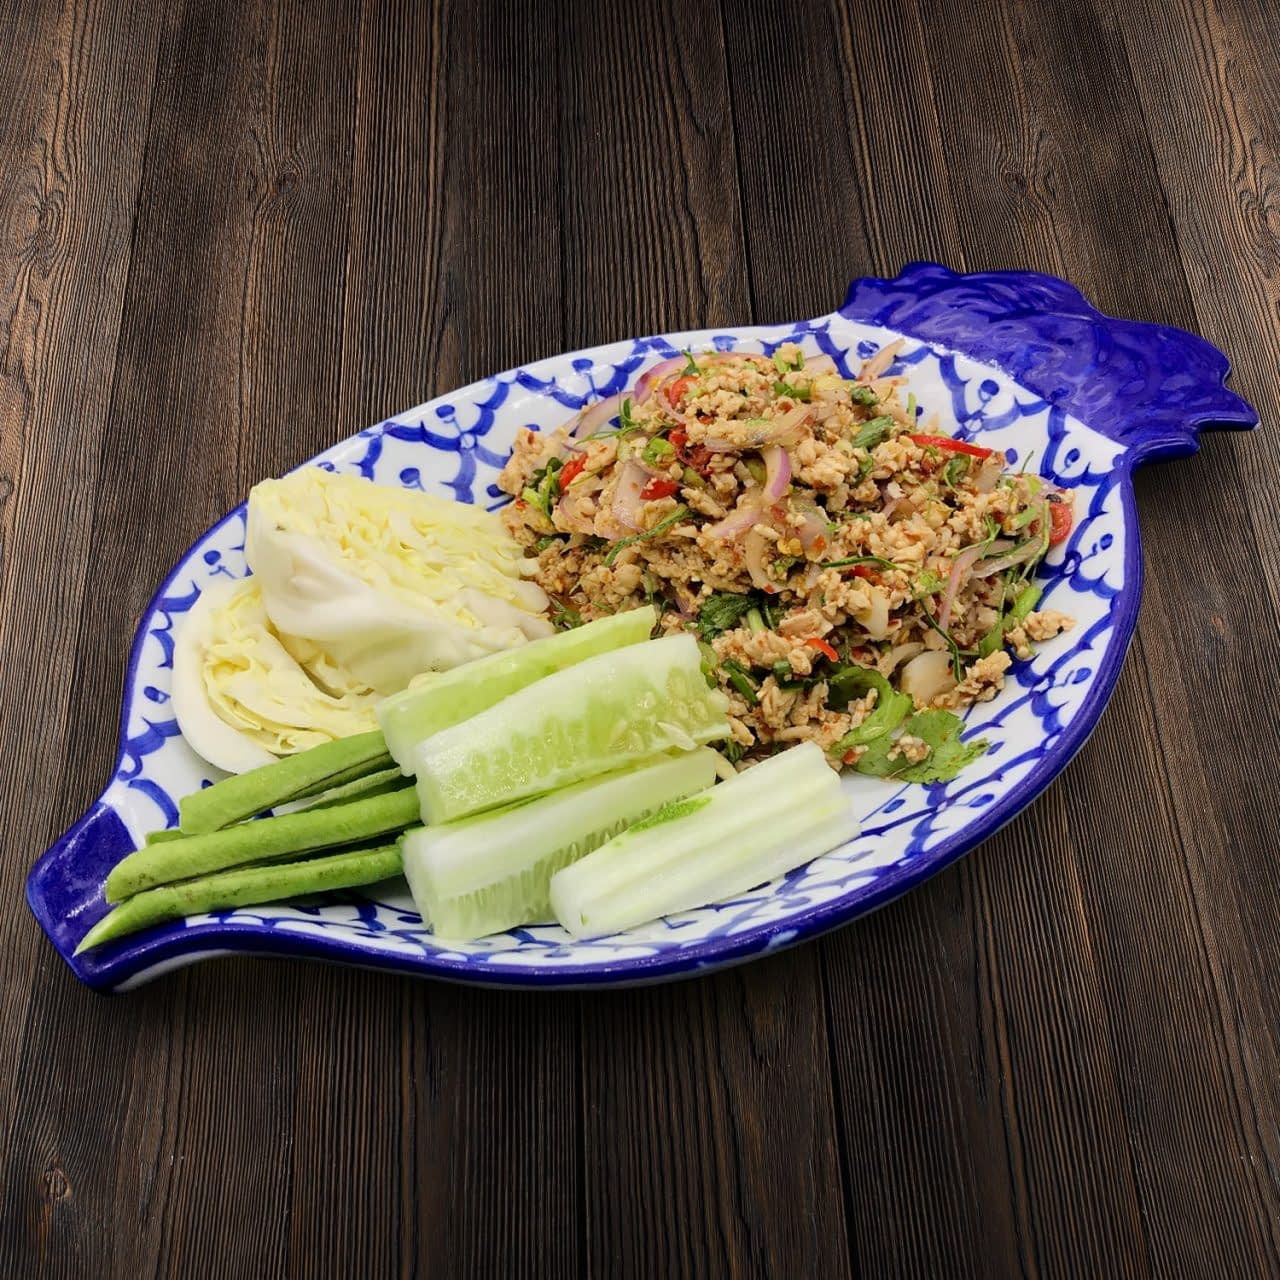 thai food delivery near me open now - Thai Food Delivery ...